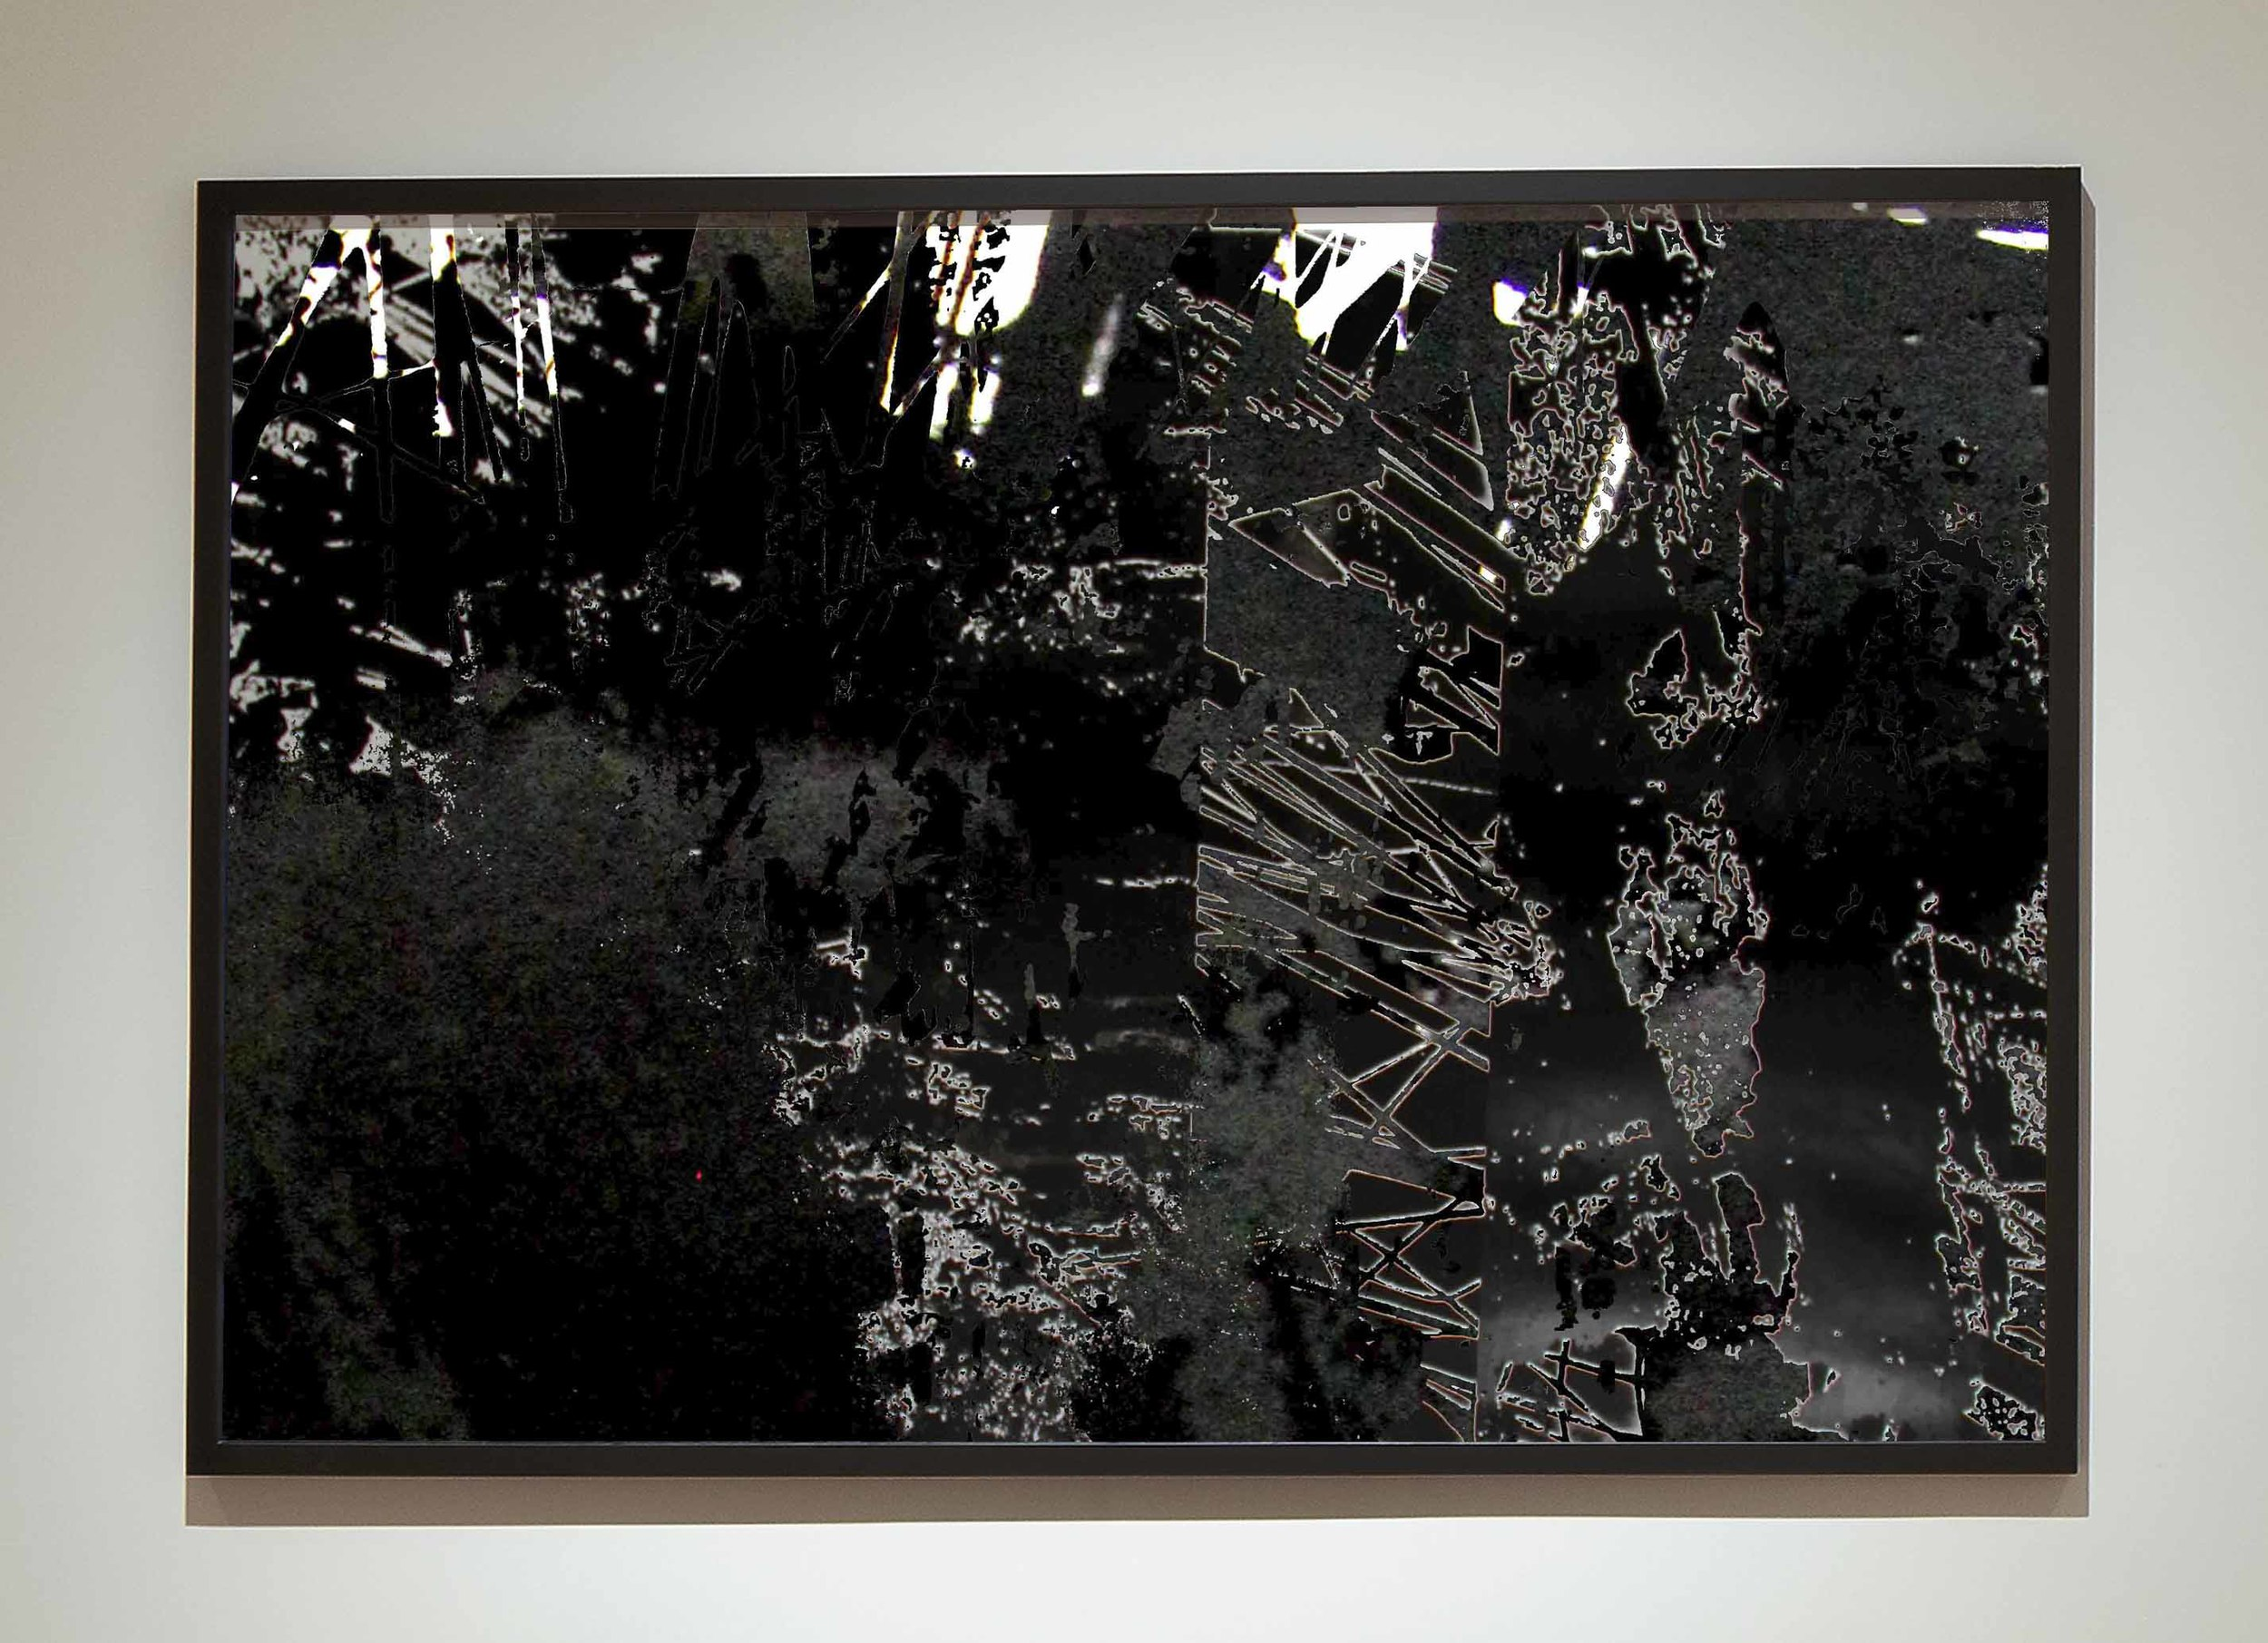 Matière III  - 2014 - Screen print on paper -   90 x 60 cm  - Edition of 01